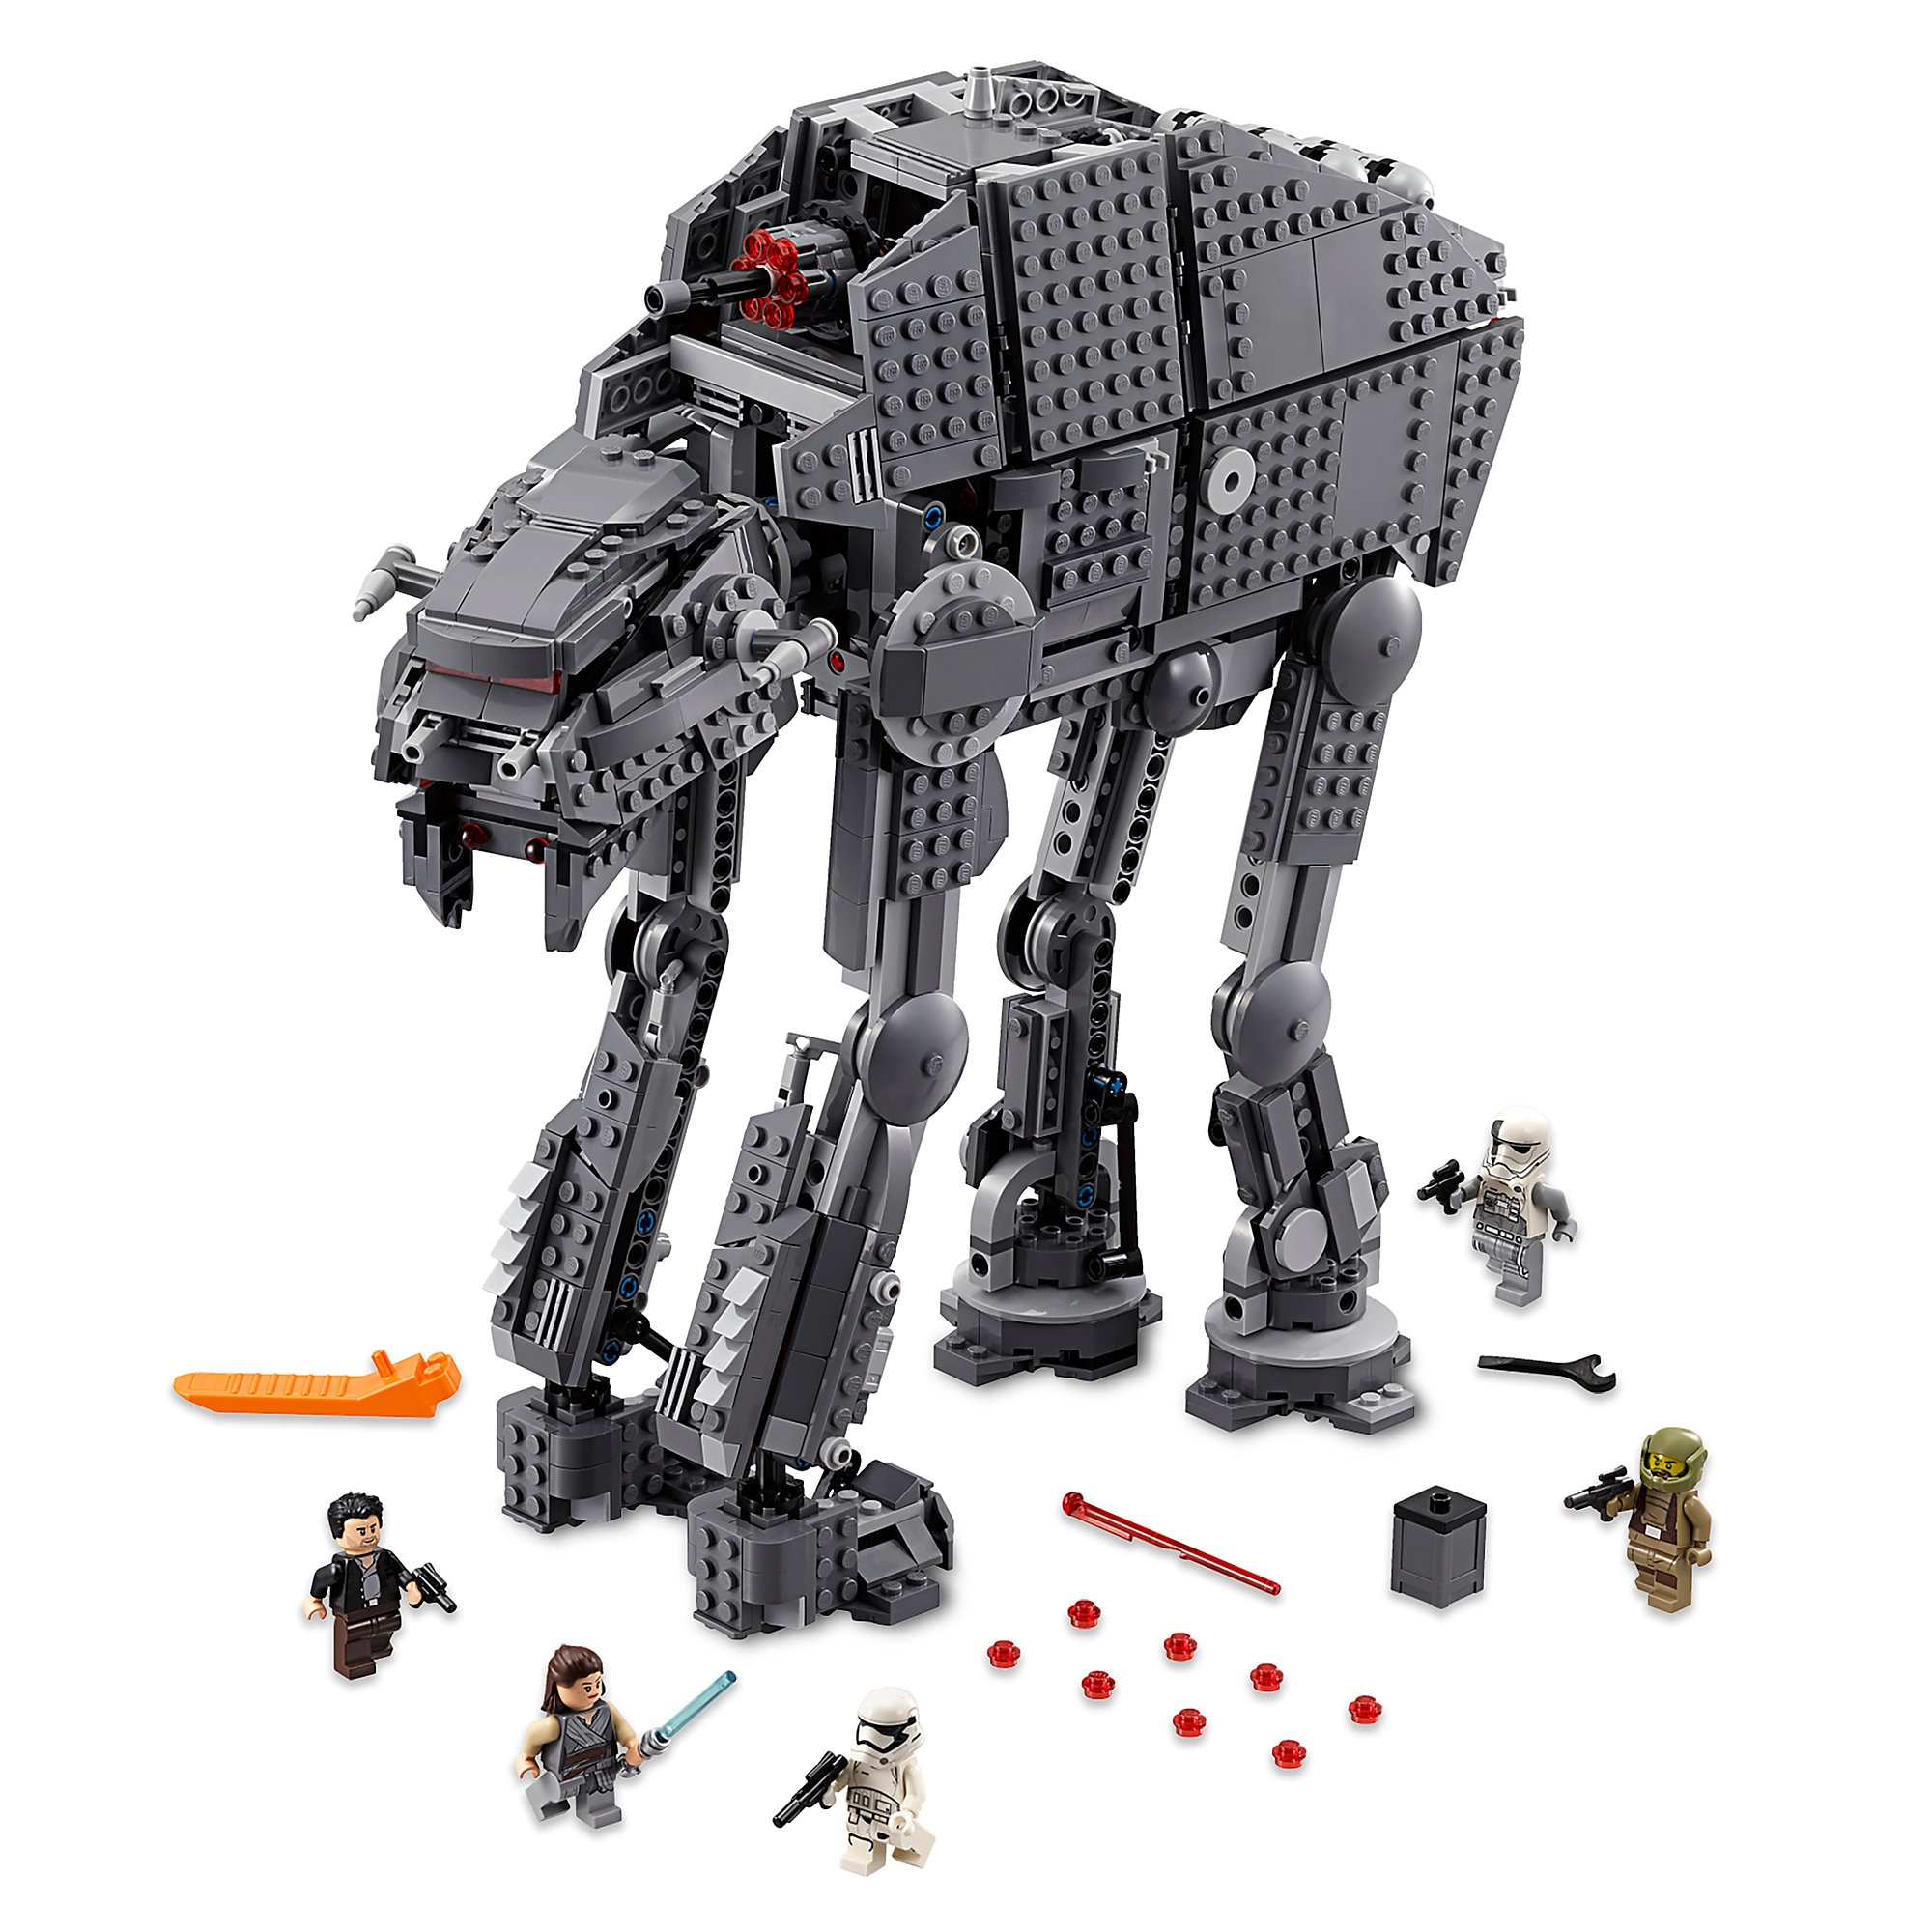 All lego star wars first order sets